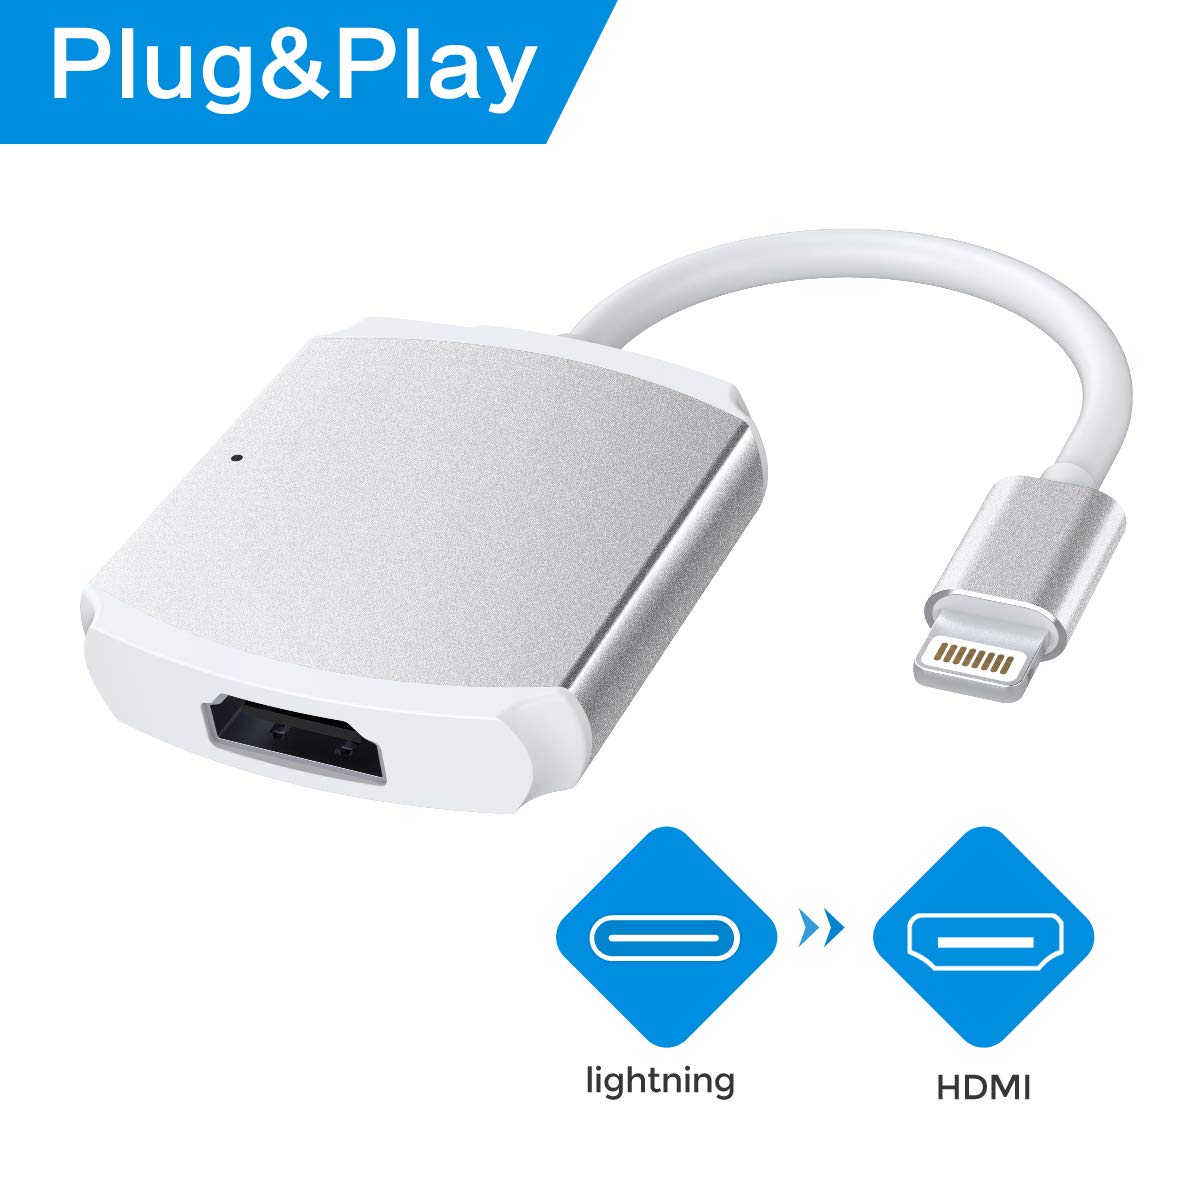 RayCue HDMI Adapter Compatible iPhone/iPad, HDMI Cable Adapter, 1080P Digital AV Adapter HDMI Connector Micro USB Charging Port Replacement iPhone & iPad, Include The Charging Cable